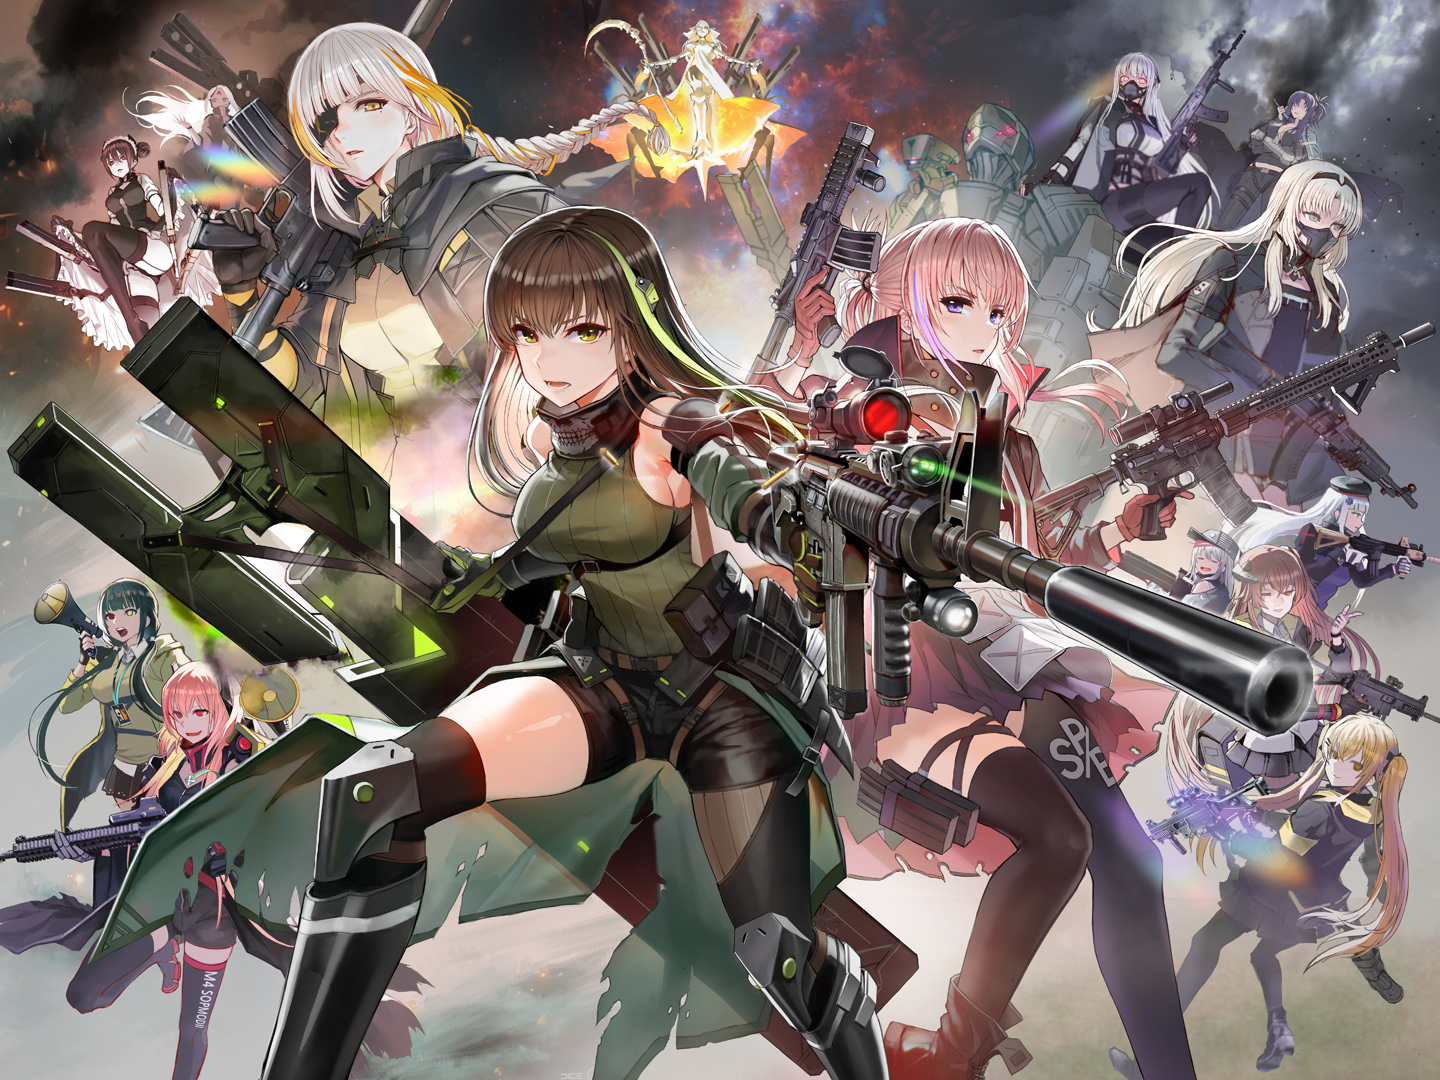 agent_(girls_frontline) ak12_(girls_frontline) an94_(girls_frontline) angelia_(girls_frontline) anthropomorphism bicolored_eyes boots braids breasts brown_eyes brown_hair elisa_(girls_frontline) g11_(girls_frontline) girls_frontline gloves group gun hat hk416_(girls_frontline) long_hair m16a1_(girls_frontline) m4a1_(girls_frontline) m4_sopmod_ii_(girls_frontline) nyto_polarday_(girls_frontline) pantyhose pink_hair ponytail purple_eyes red_eyes ro635_(girls_frontline) shorts skirt st_ar-15_(girls_frontline) taesi thighhighs twintails ump-45_(girls_frontline) ump-9_(girls_frontline) weapon white_hair wink yellow_eyes